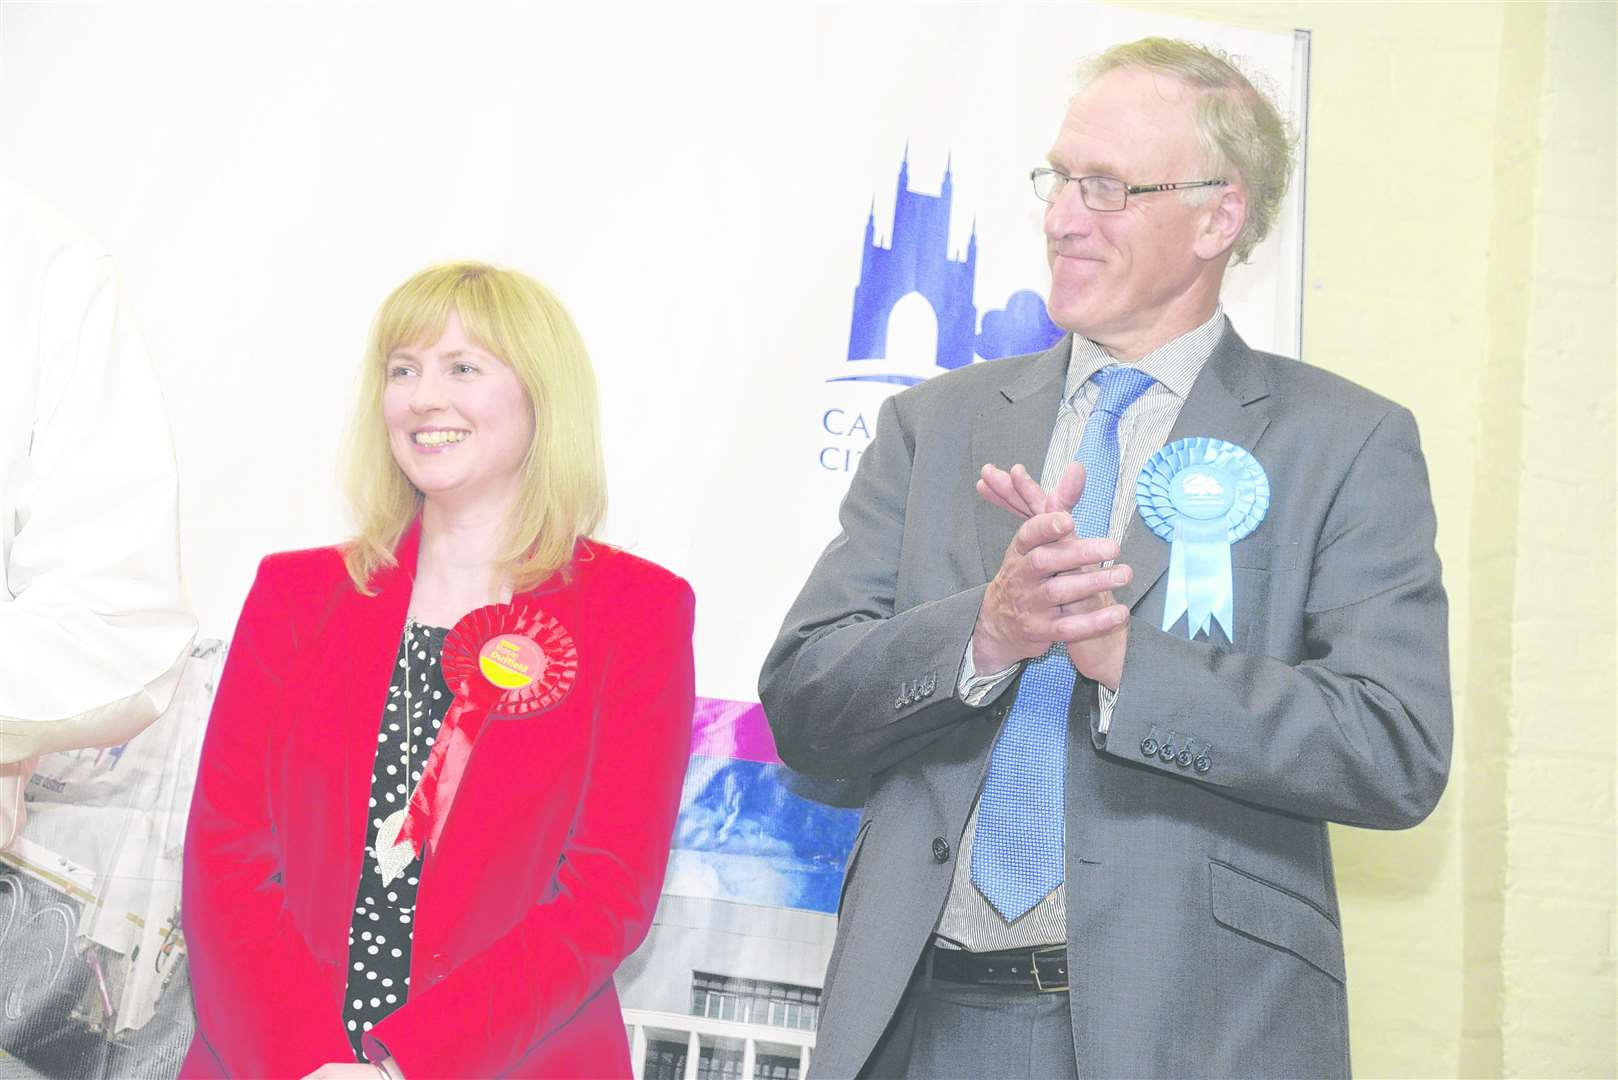 Labour's Rosie Duffield and Sir Julian Brazier at the 2017 election count